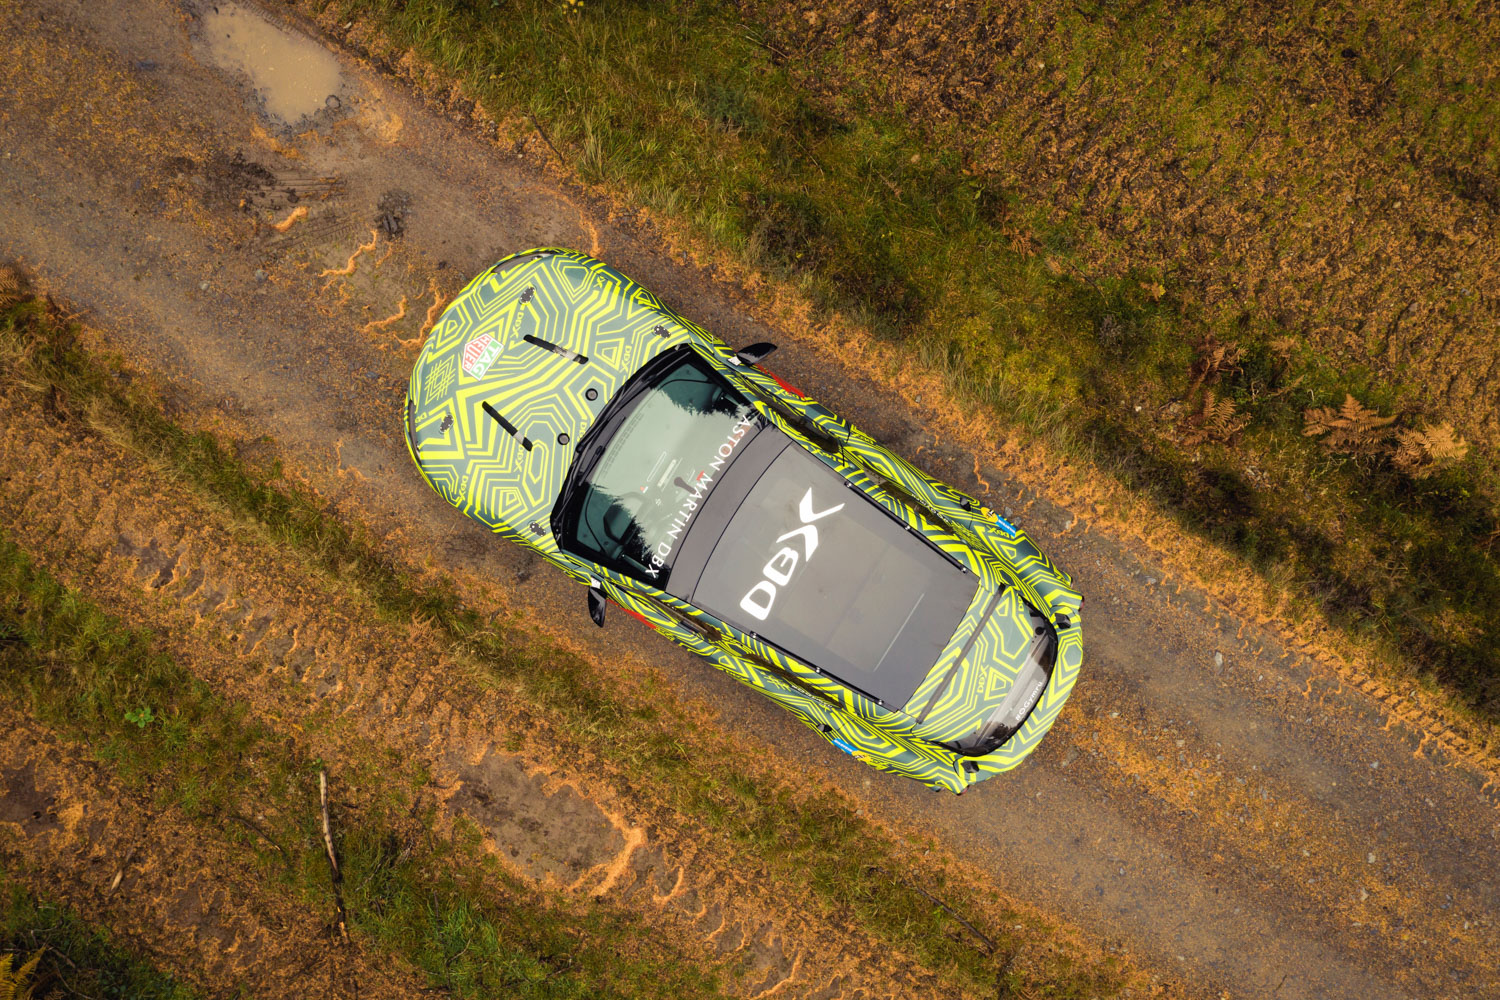 Aston Martin DBX prototype above view